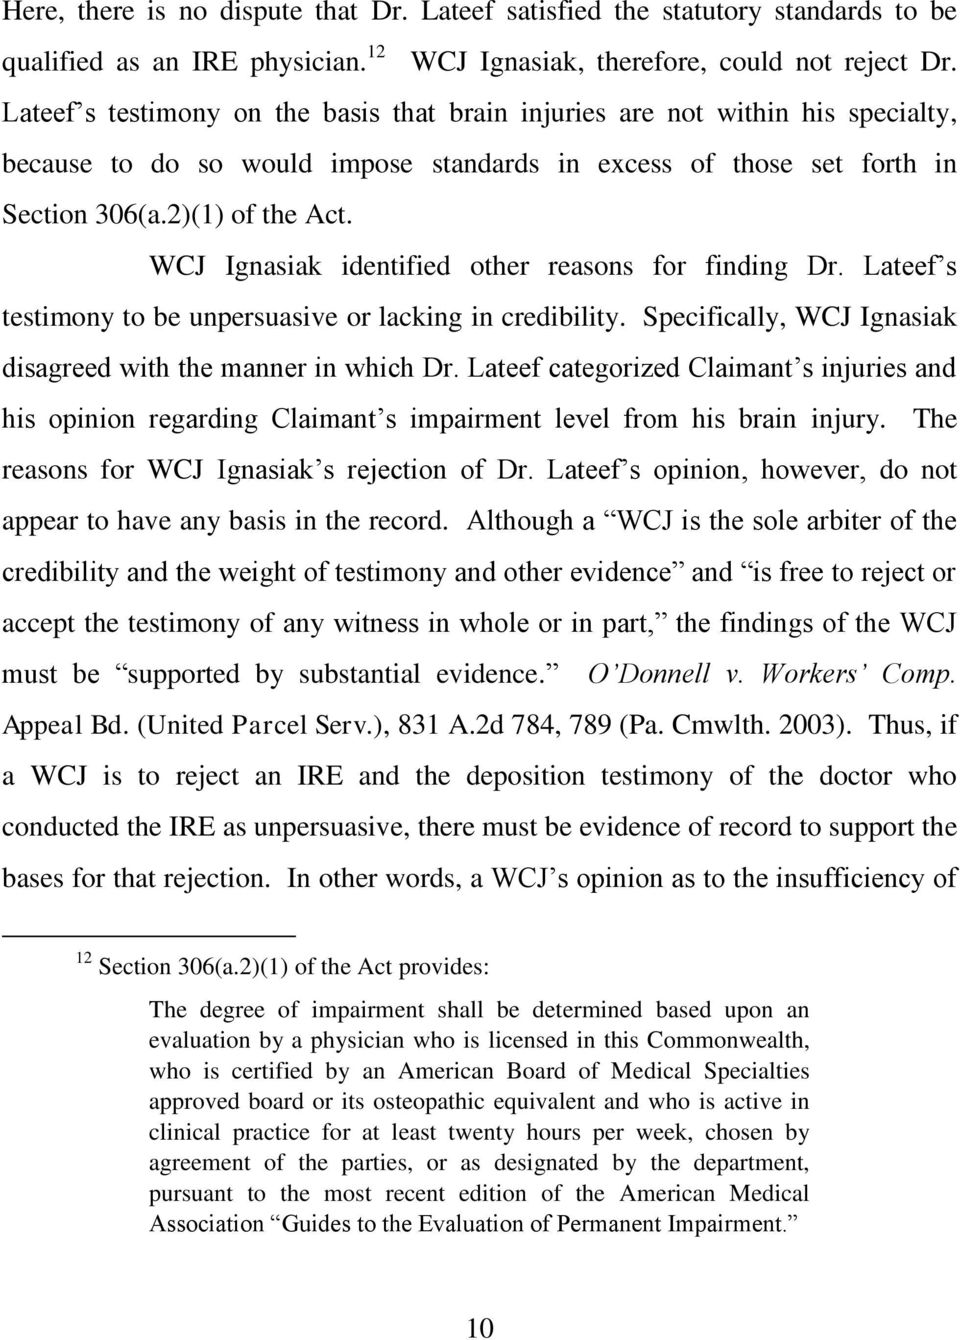 WCJ Ignasiak identified other reasons for finding Dr. Lateef s testimony to be unpersuasive or lacking in credibility. Specifically, WCJ Ignasiak disagreed with the manner in which Dr.